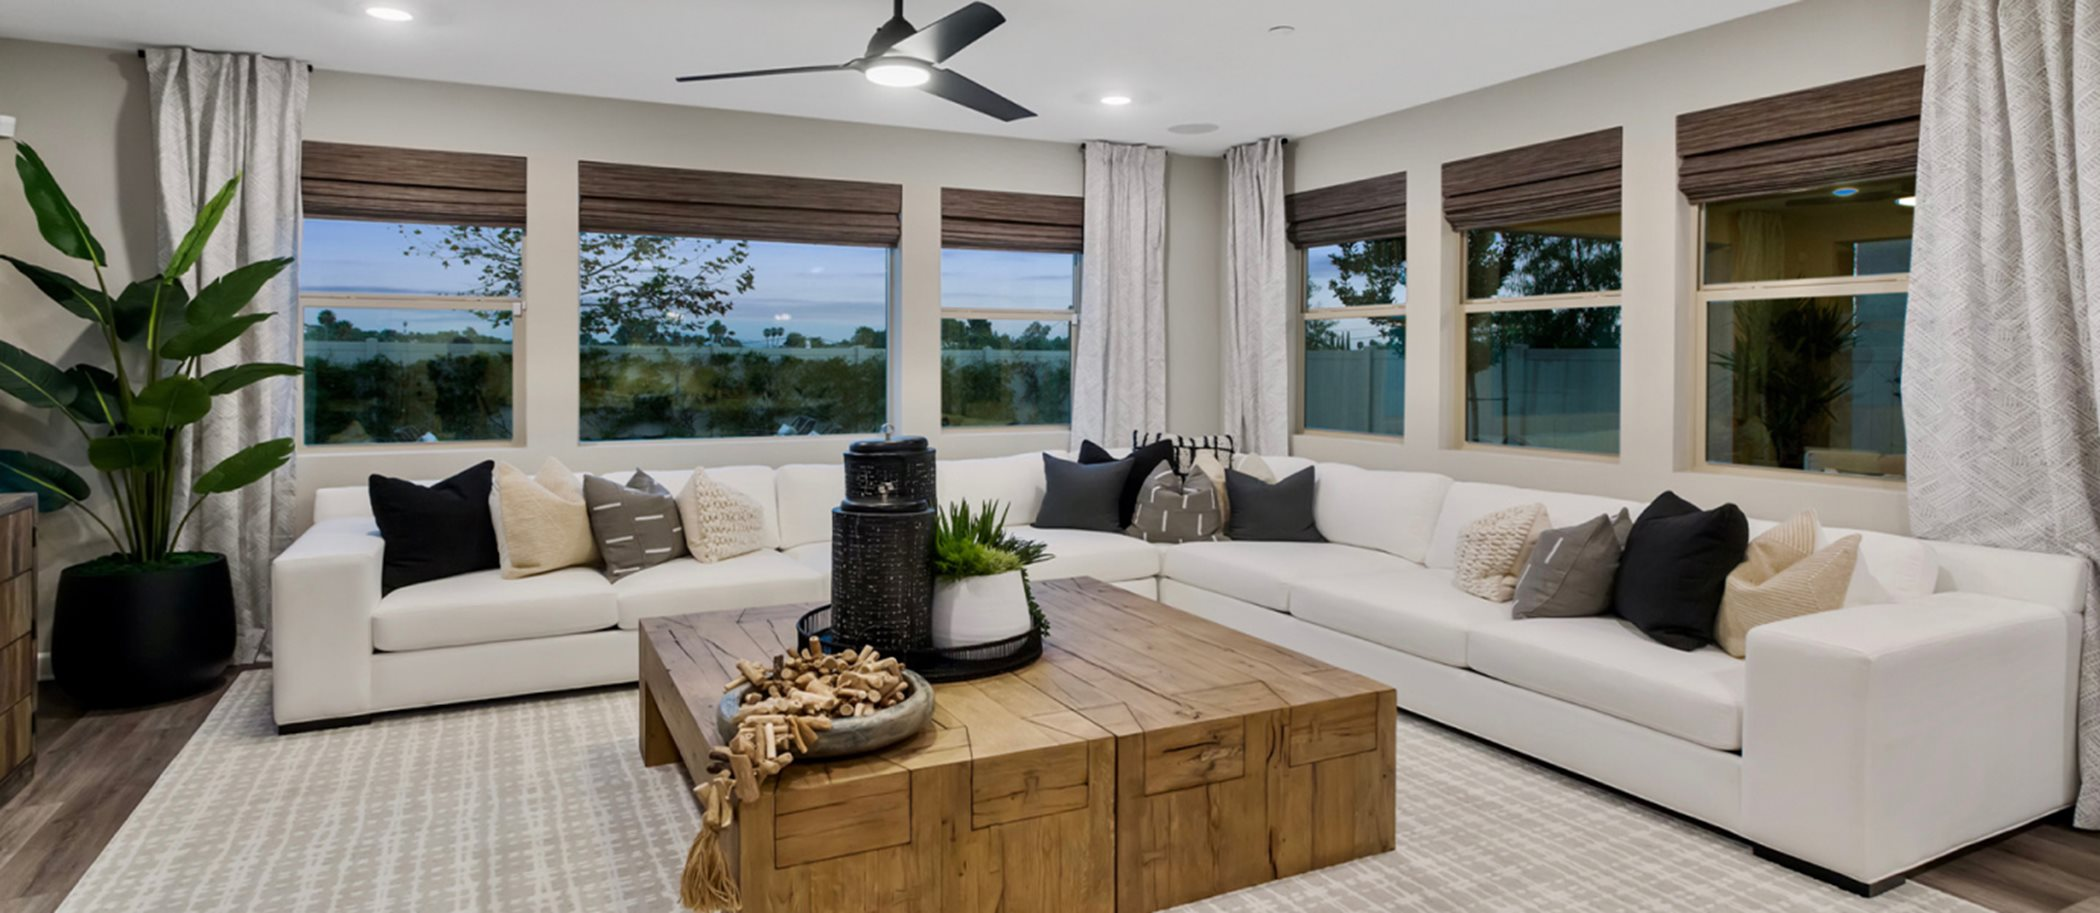 Sanctuary at Canopy Grove Residence 3 Living